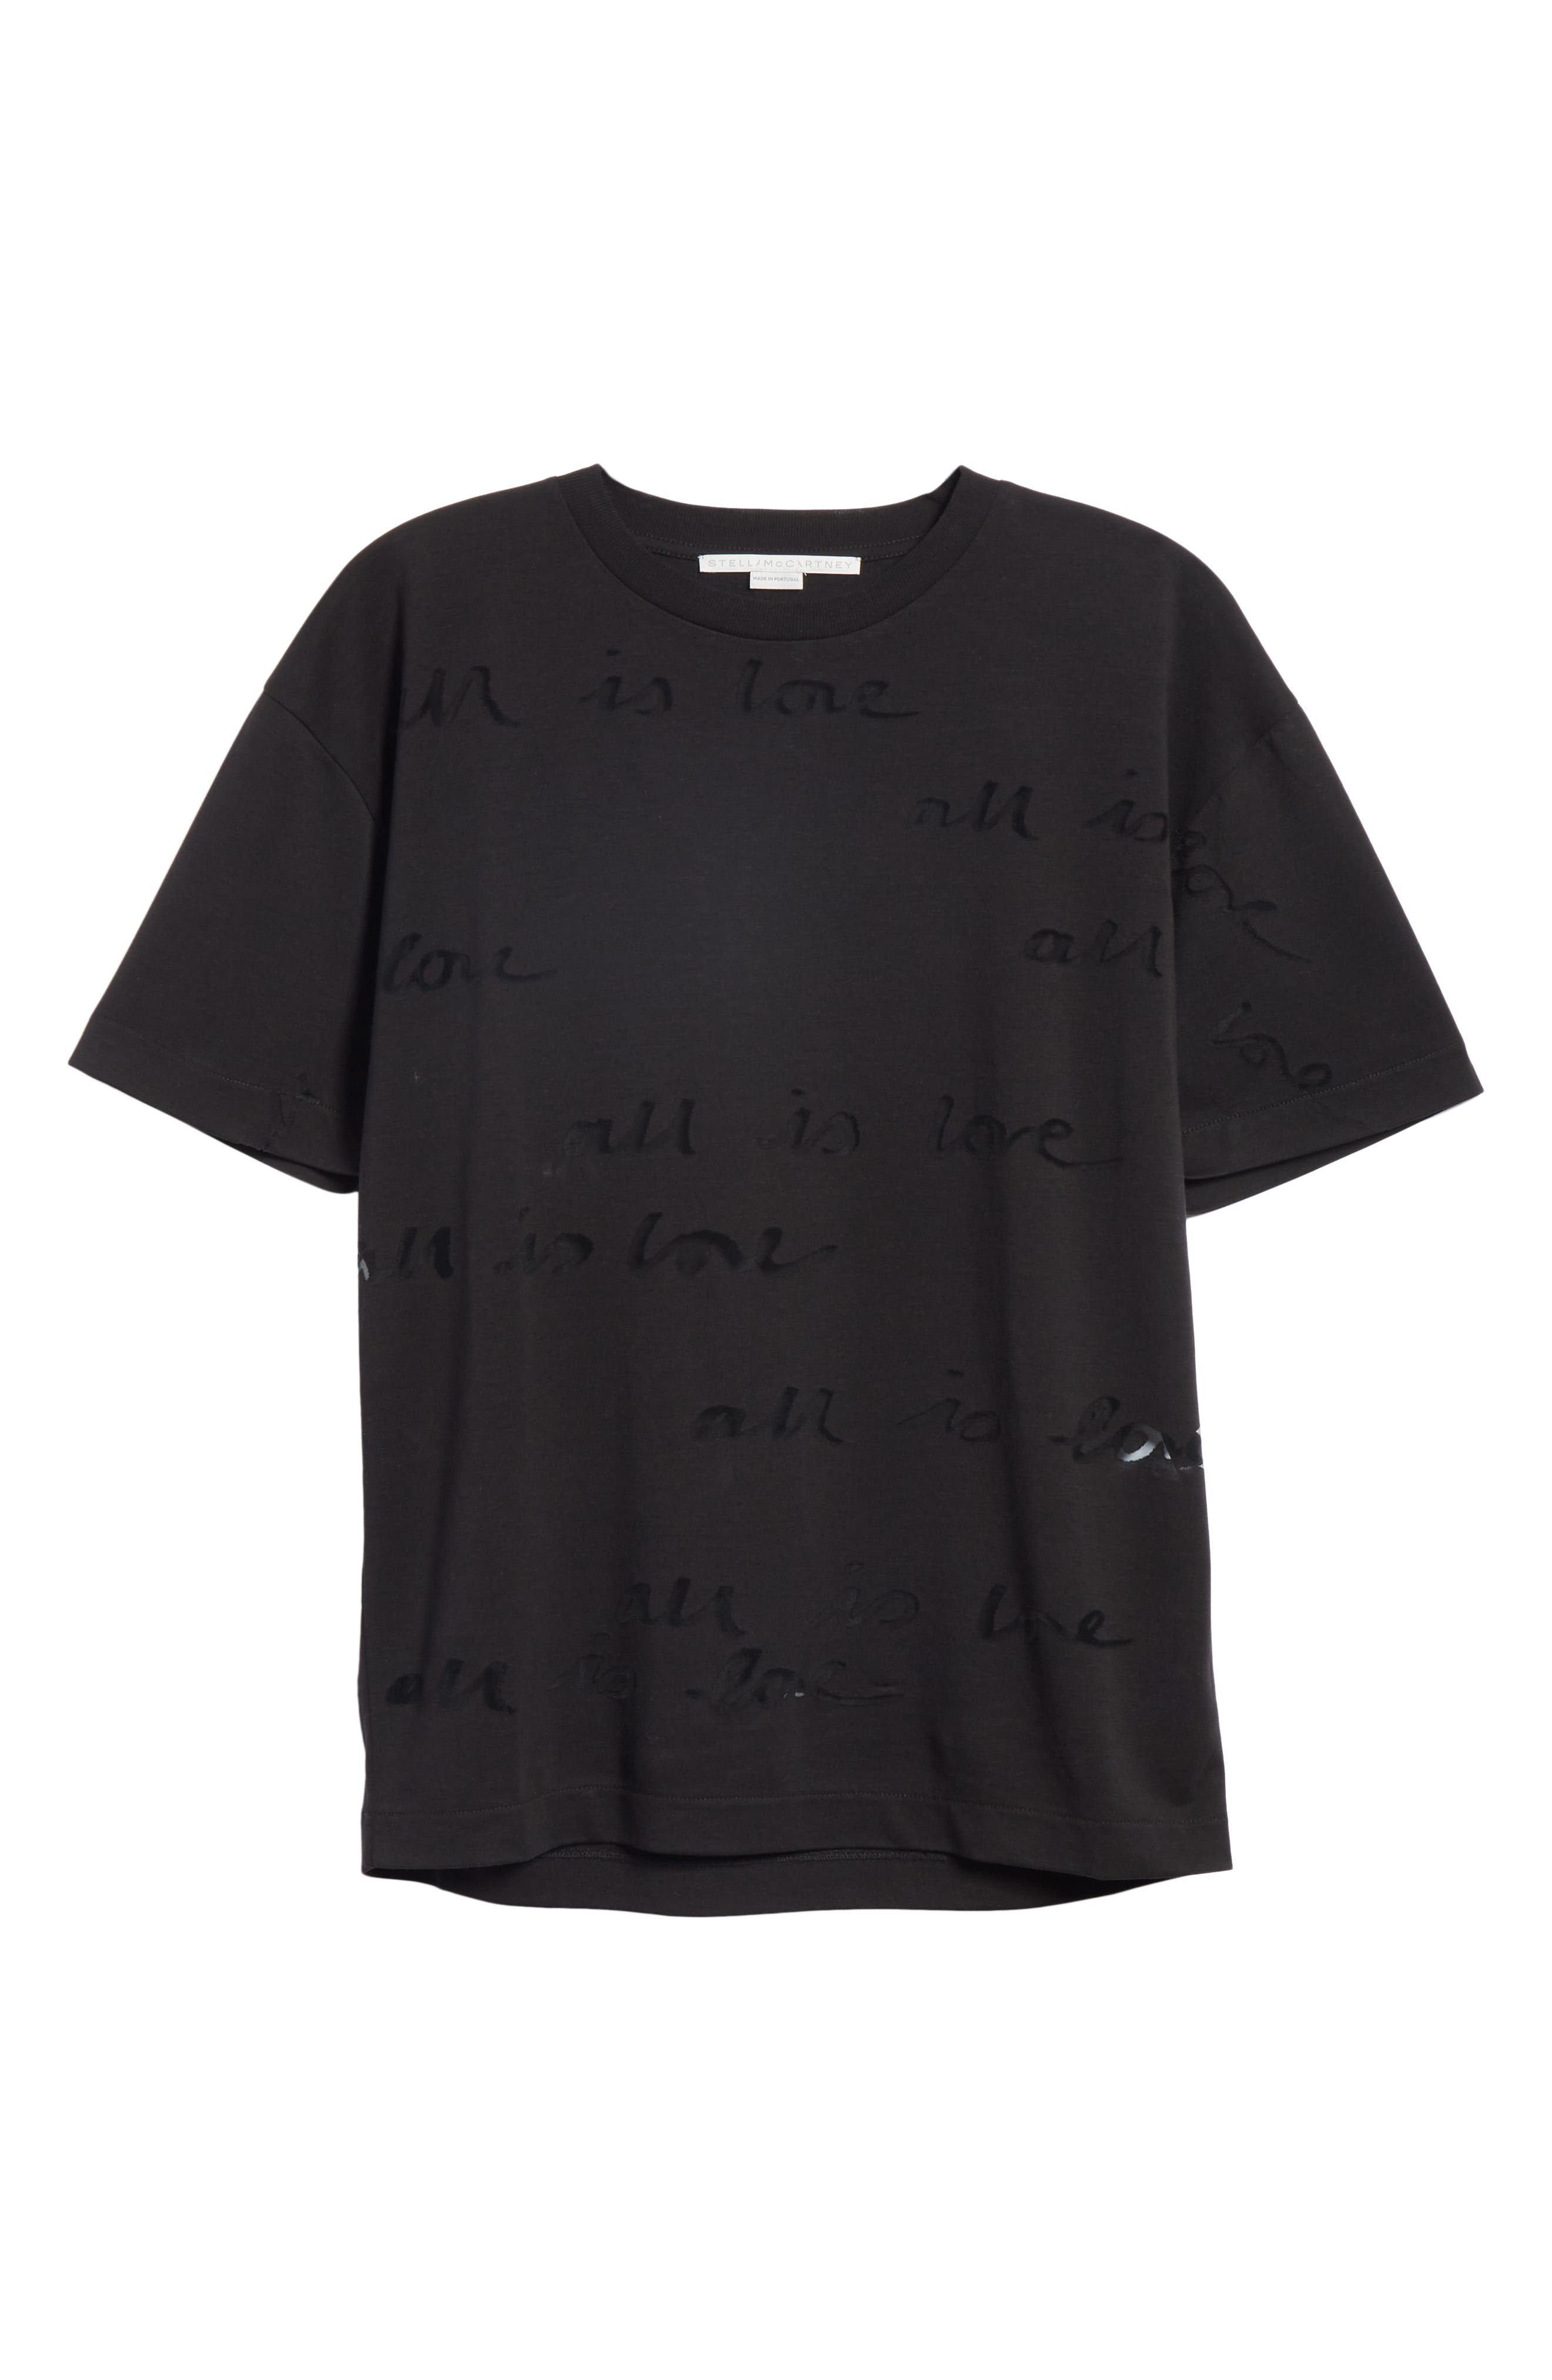 All Is Love See Through Graphic Tee,                             Alternate thumbnail 6, color,                             001